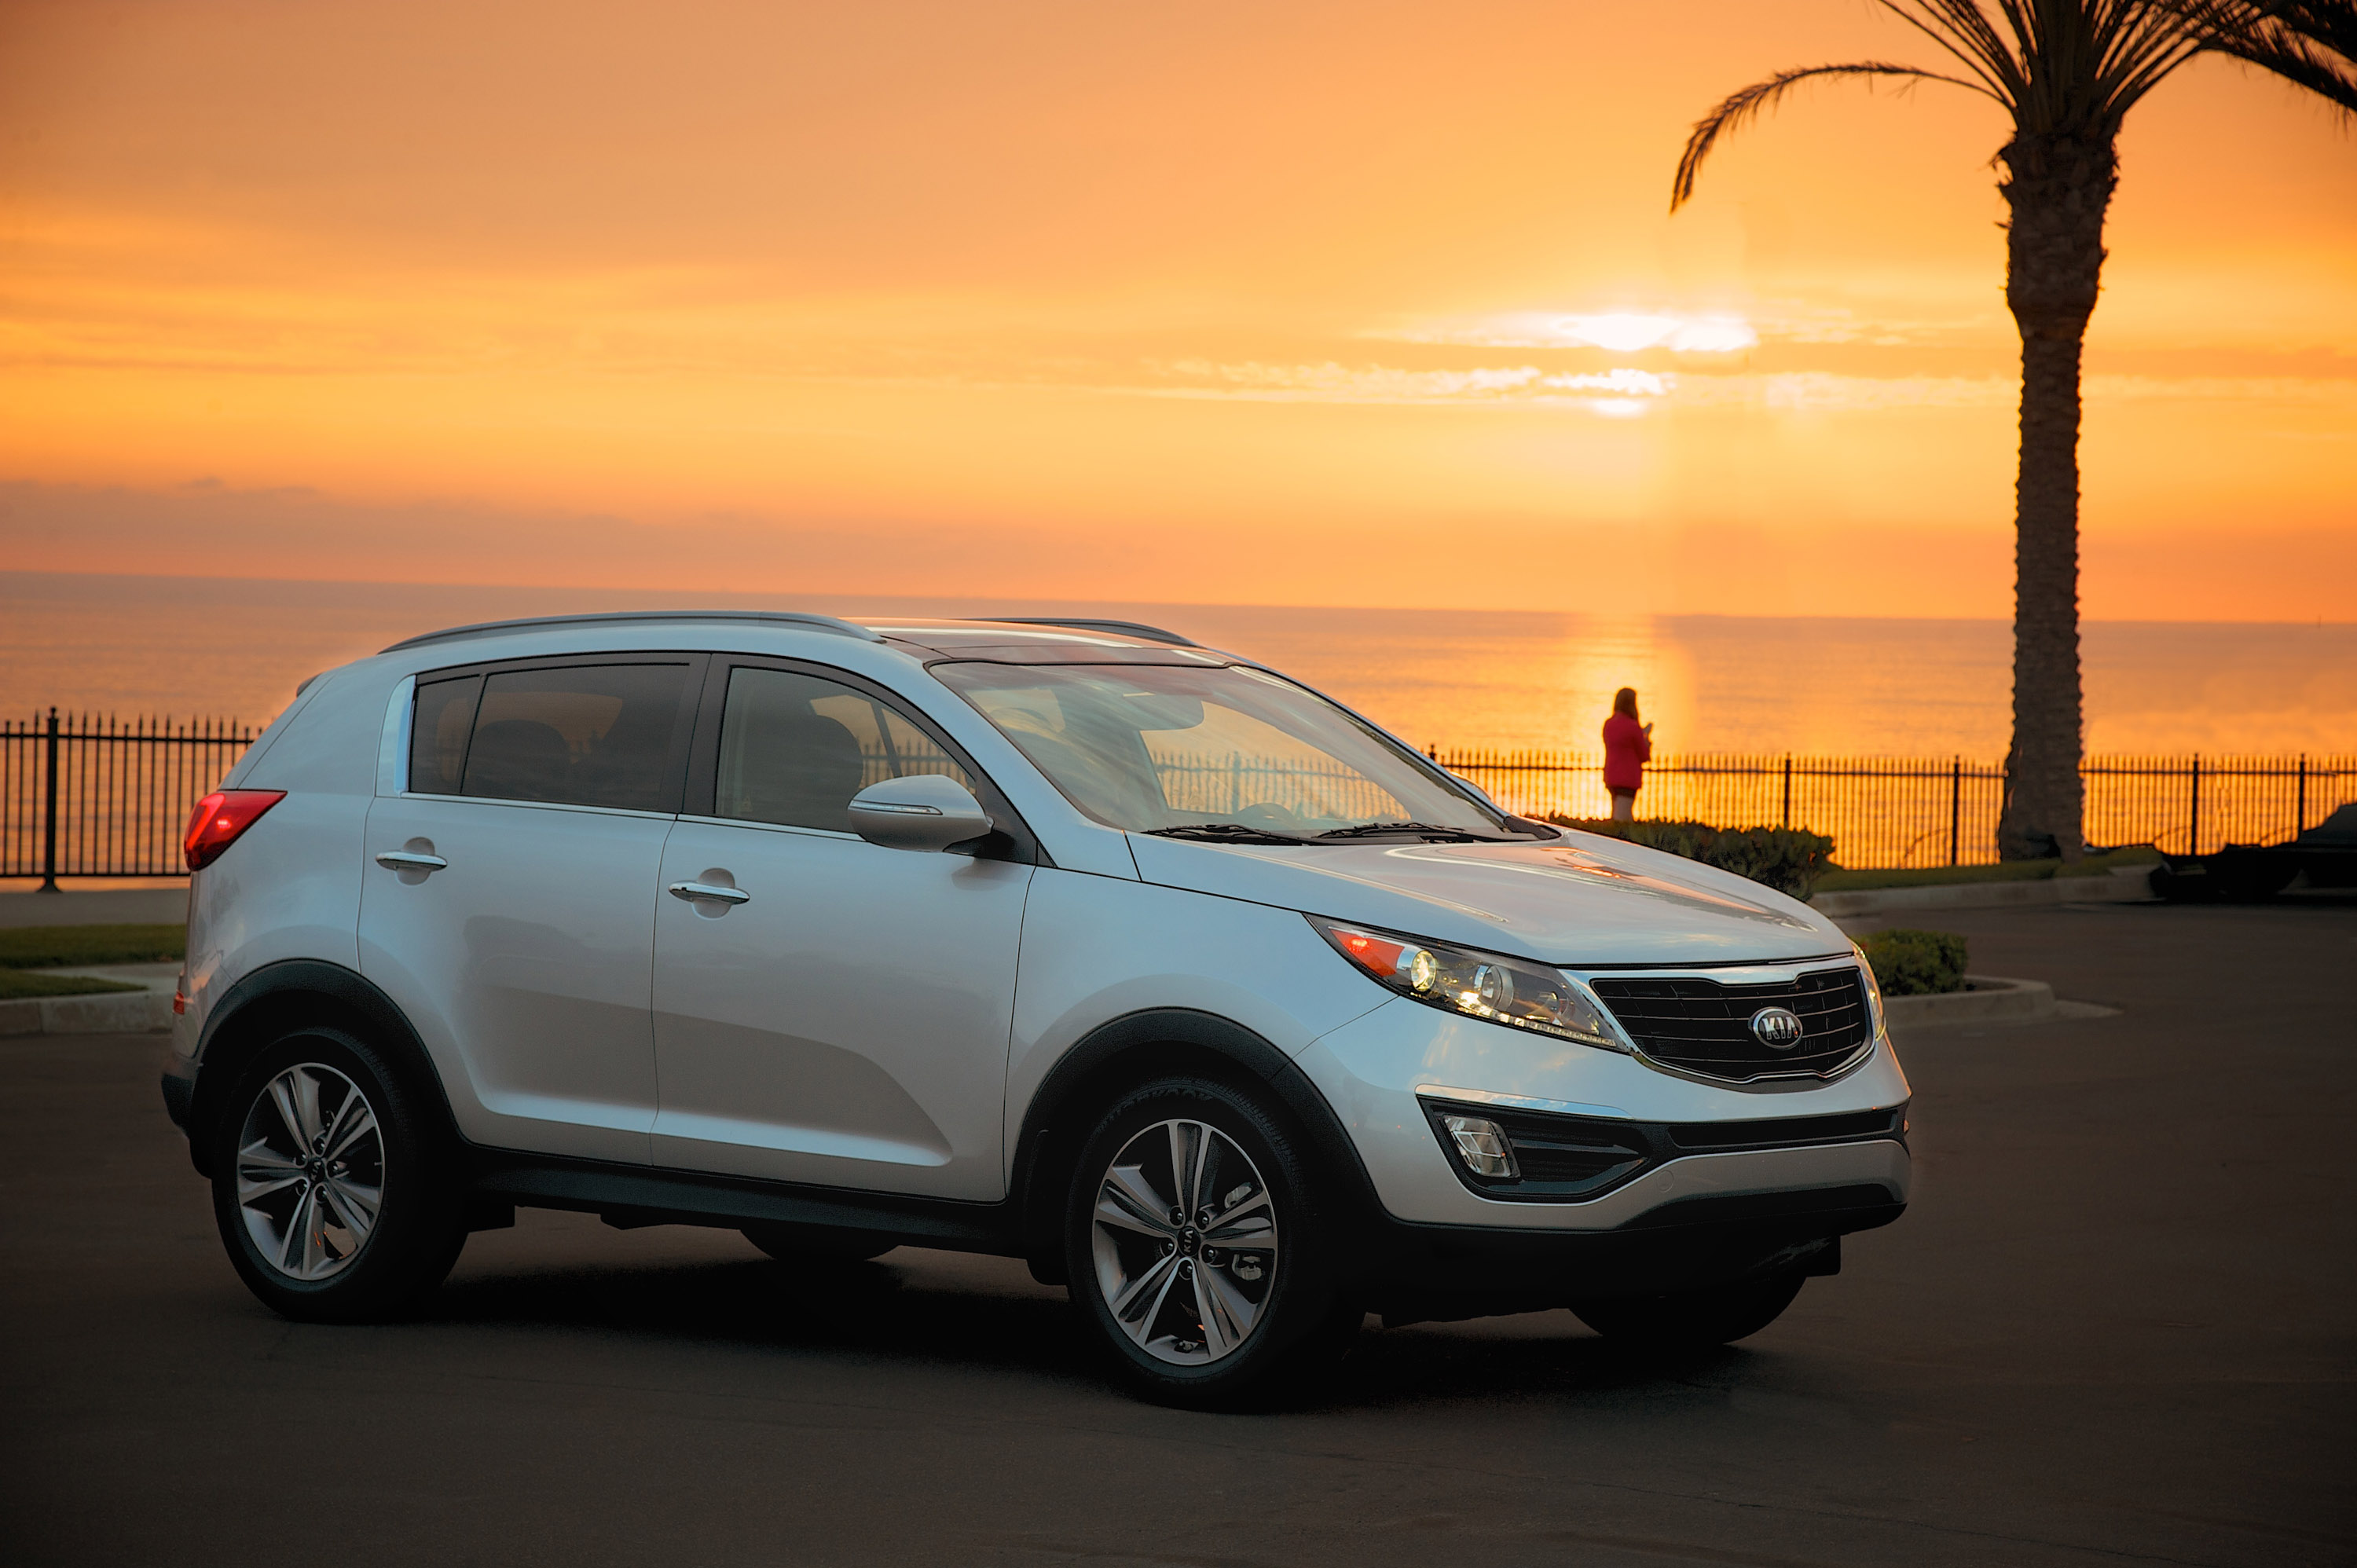 rhd made wow gt sportage line all fourth kia to the buzz generation new ql ge exterior